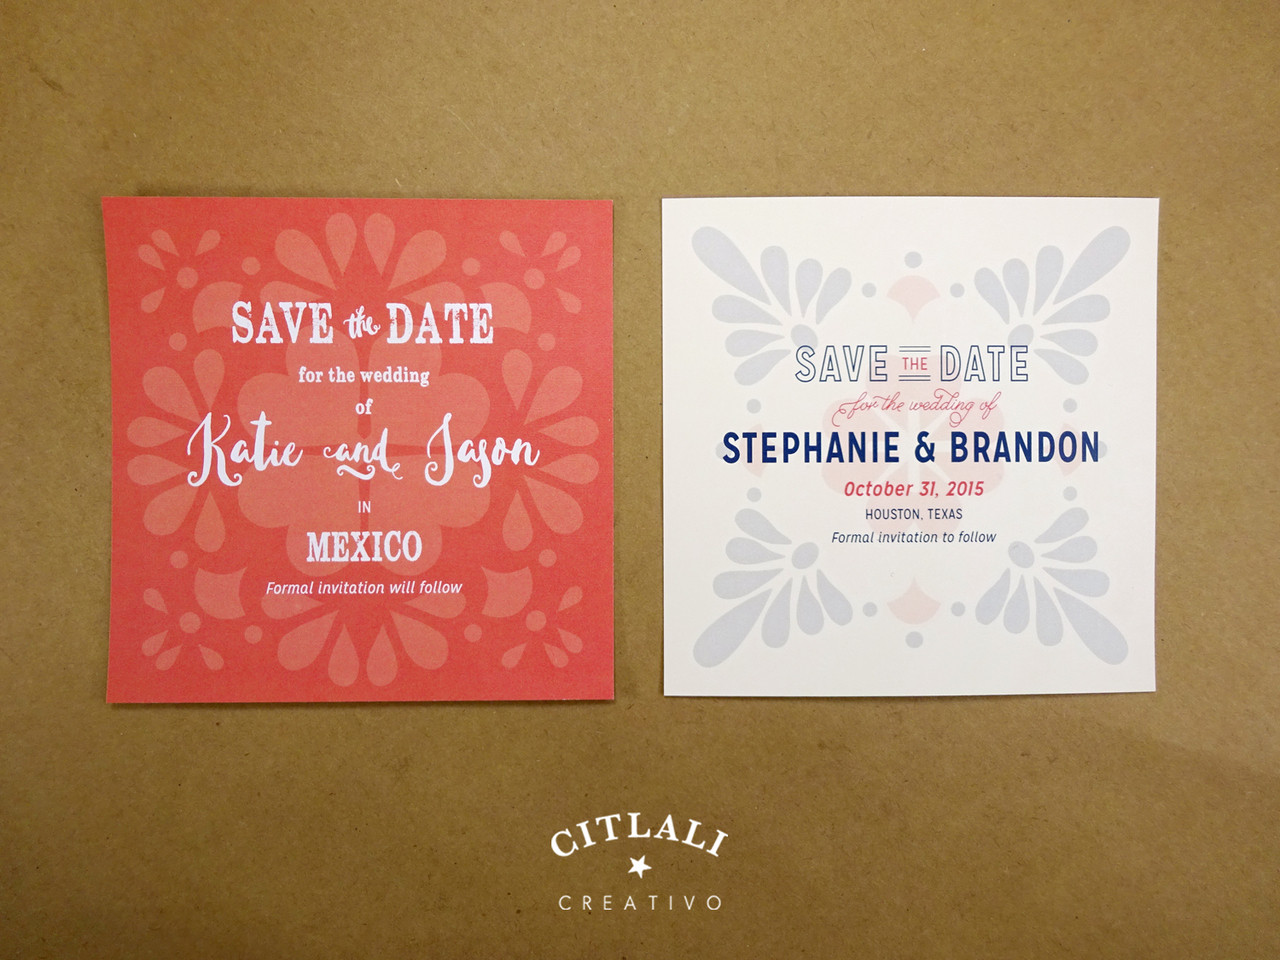 Beautiful invitations in spanish for wedding adornment invitations talavera spanish tile wedding save the date announcement citlali stopboris Image collections